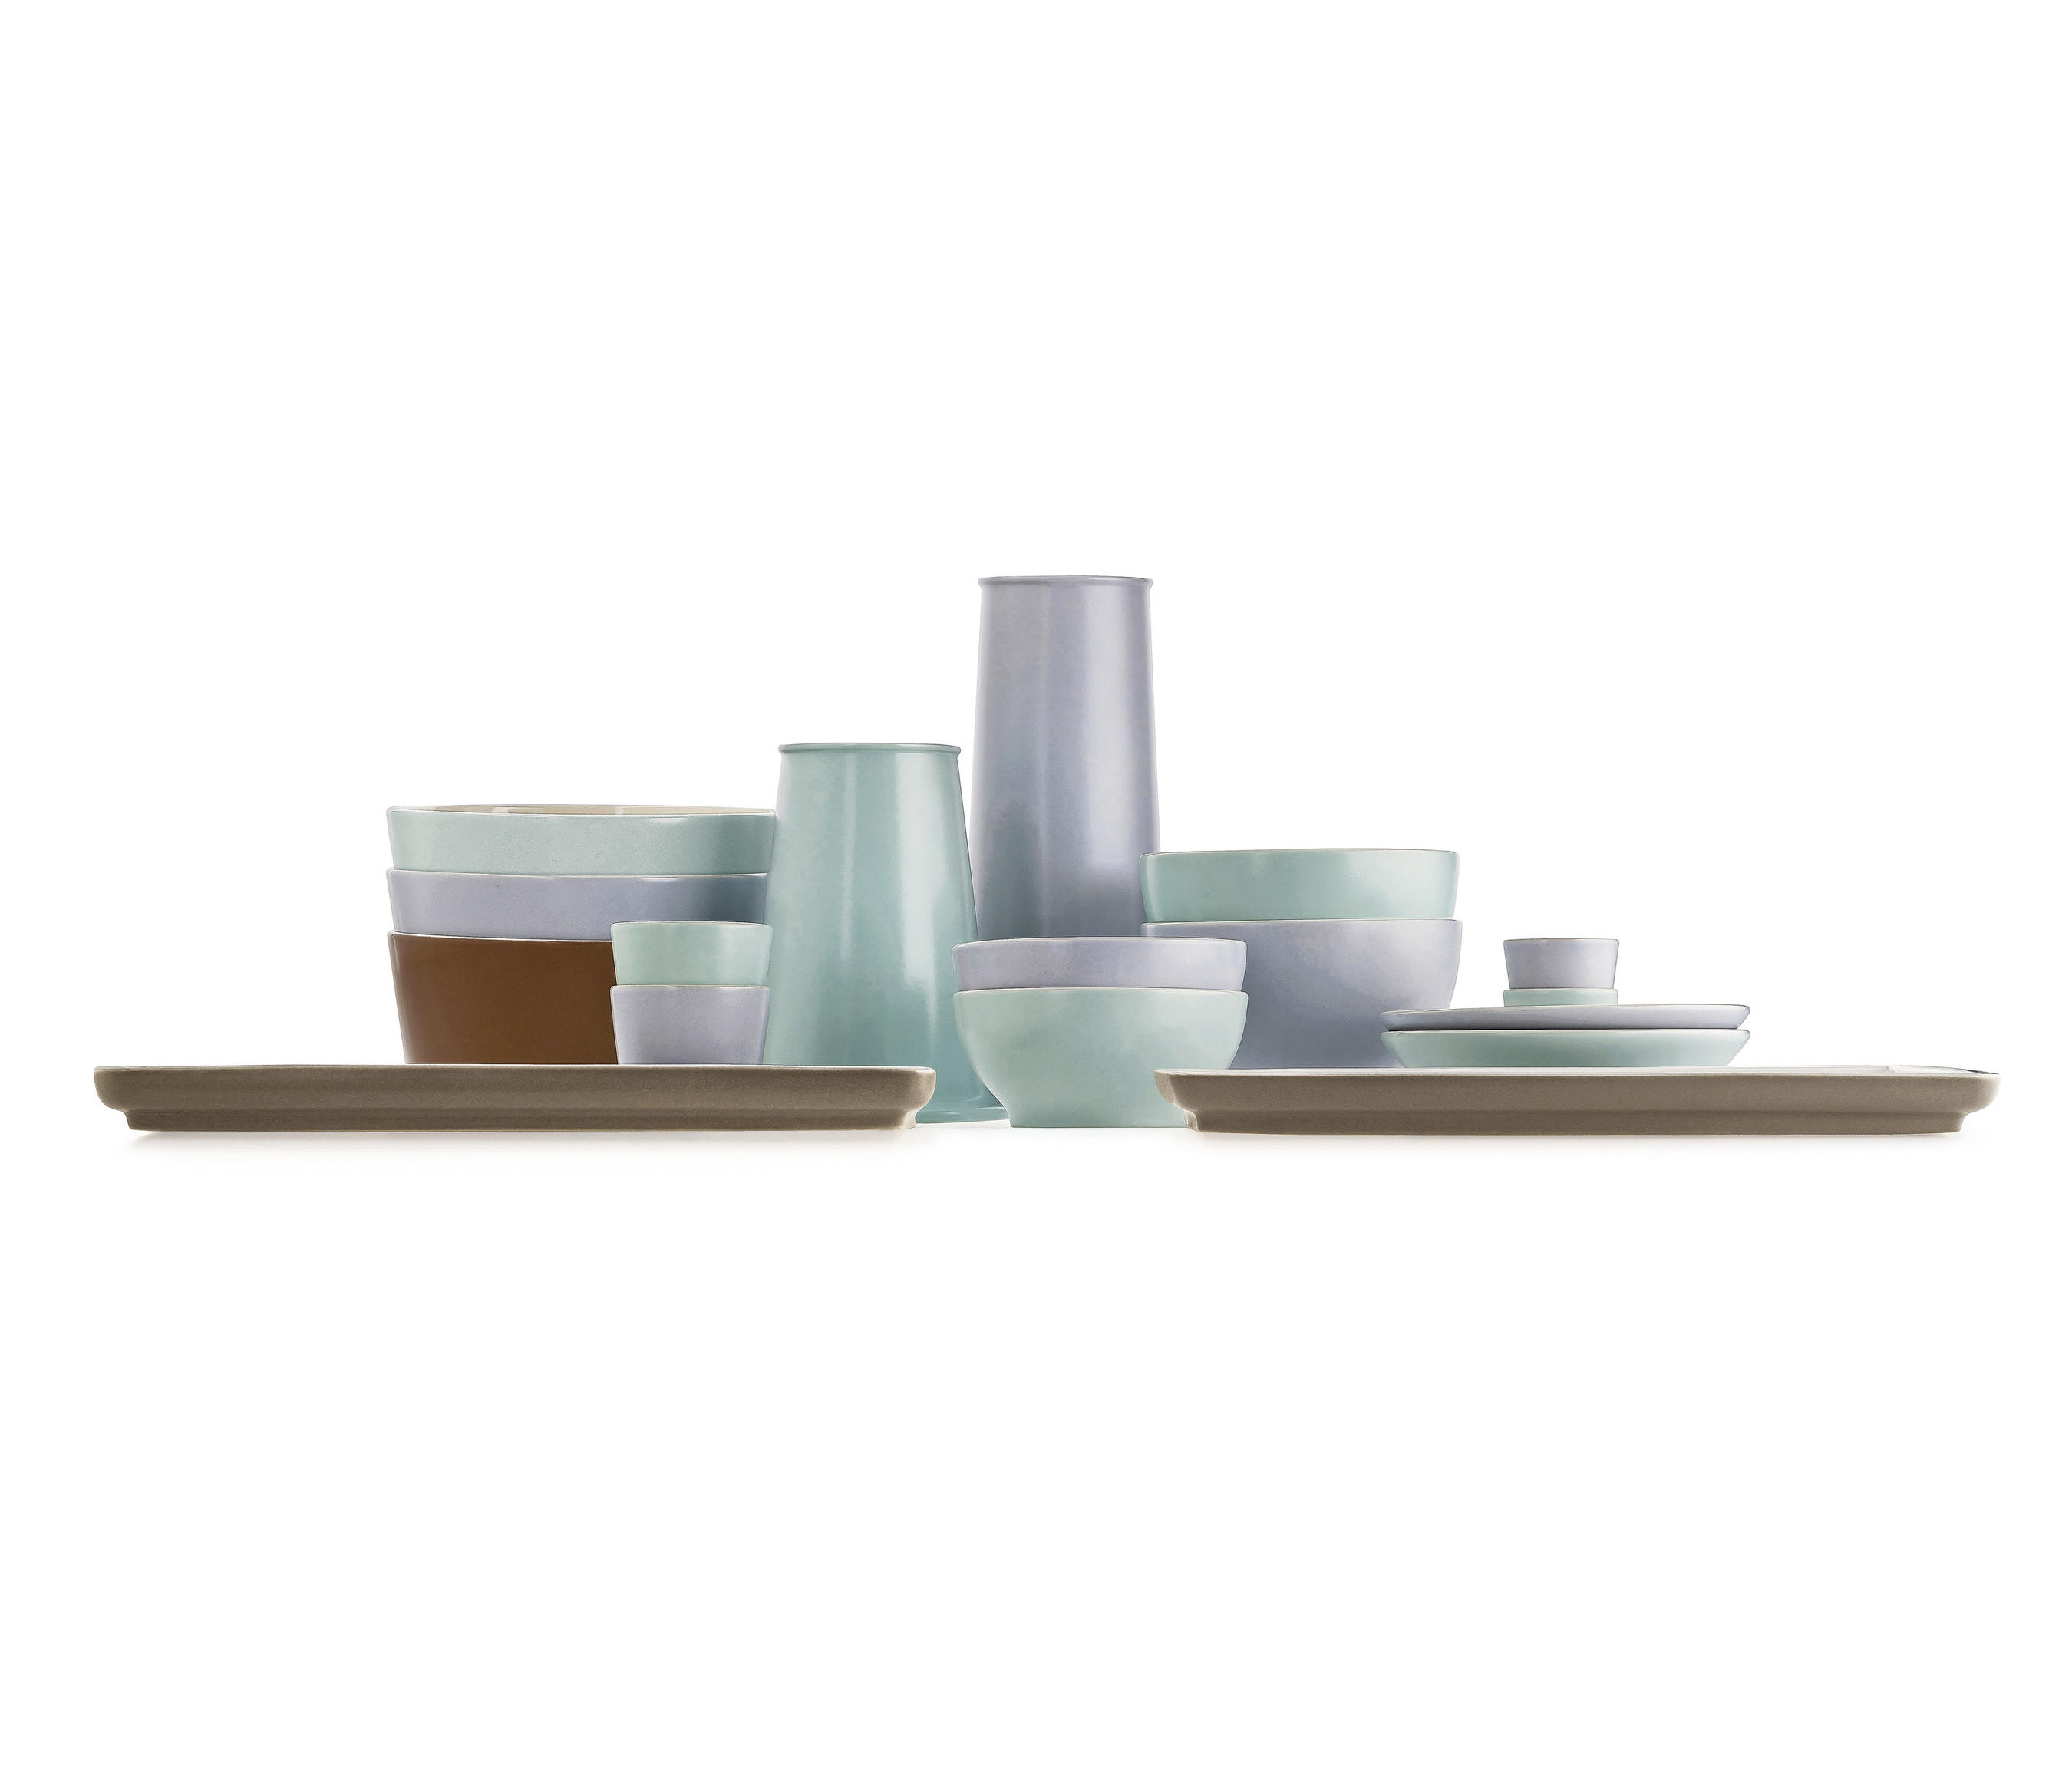 Tonale DC03 by Alessi | Dinnerware  sc 1 st  Architonic & TONALE DC03 - Dinnerware from Alessi | Architonic